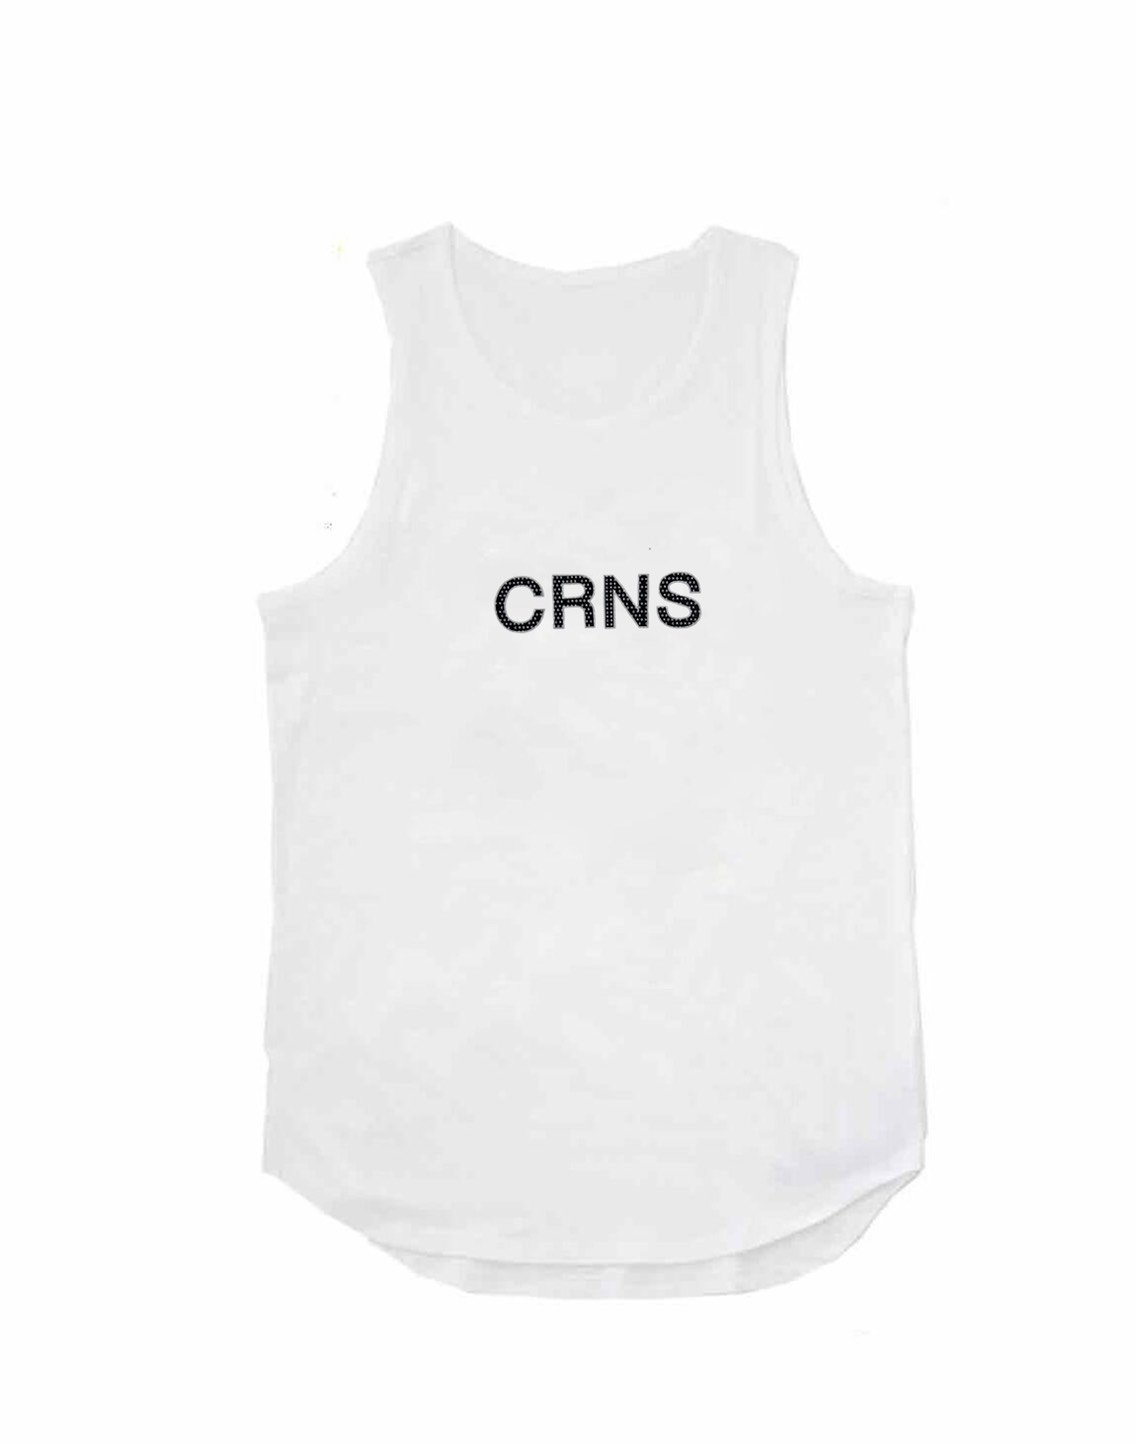 <img class='new_mark_img1' src='https://img.shop-pro.jp/img/new/icons1.gif' style='border:none;display:inline;margin:0px;padding:0px;width:auto;' />CRNS DOT  LOGO TANK TOP【WHITE】